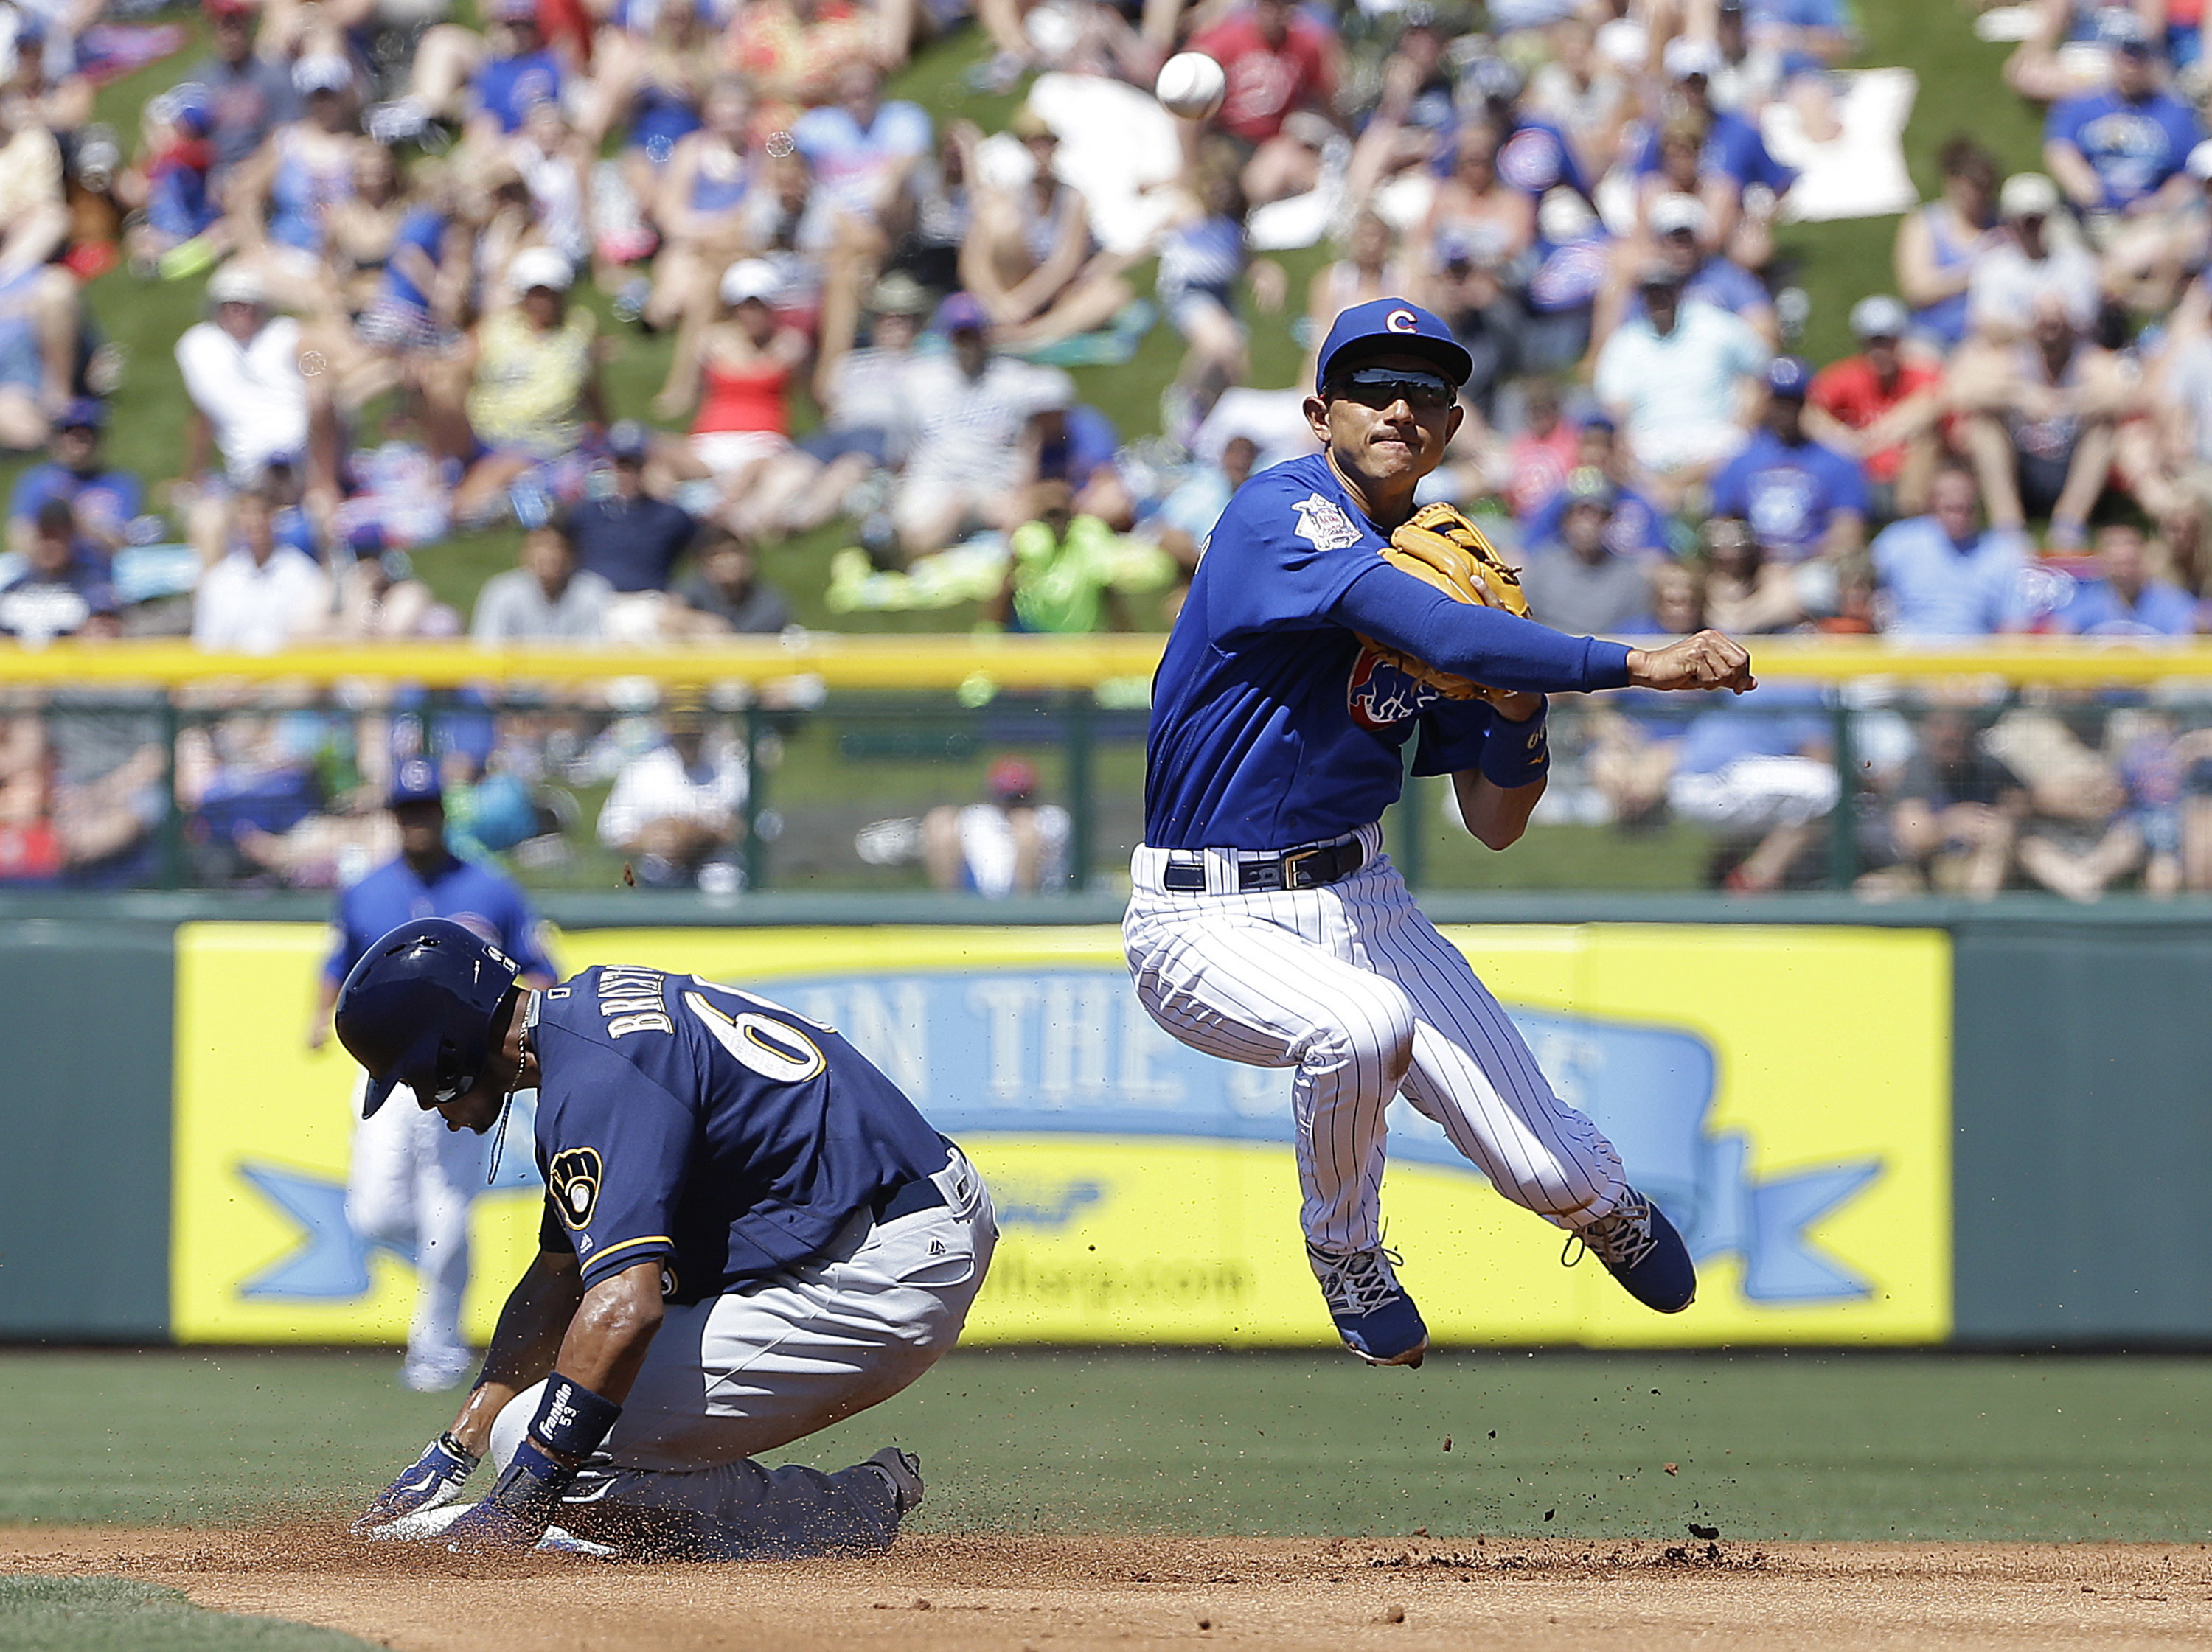 Chicago Cubs shortstop Munenori Kawasaki, right, throws to first base after forcing out Milwaukee Brewers' Keon Broxton at second base during the first inning of a spring training baseball game in Mesa, Ariz., Friday, March 25, 2016. (AP Photo/Jeff Chiu)